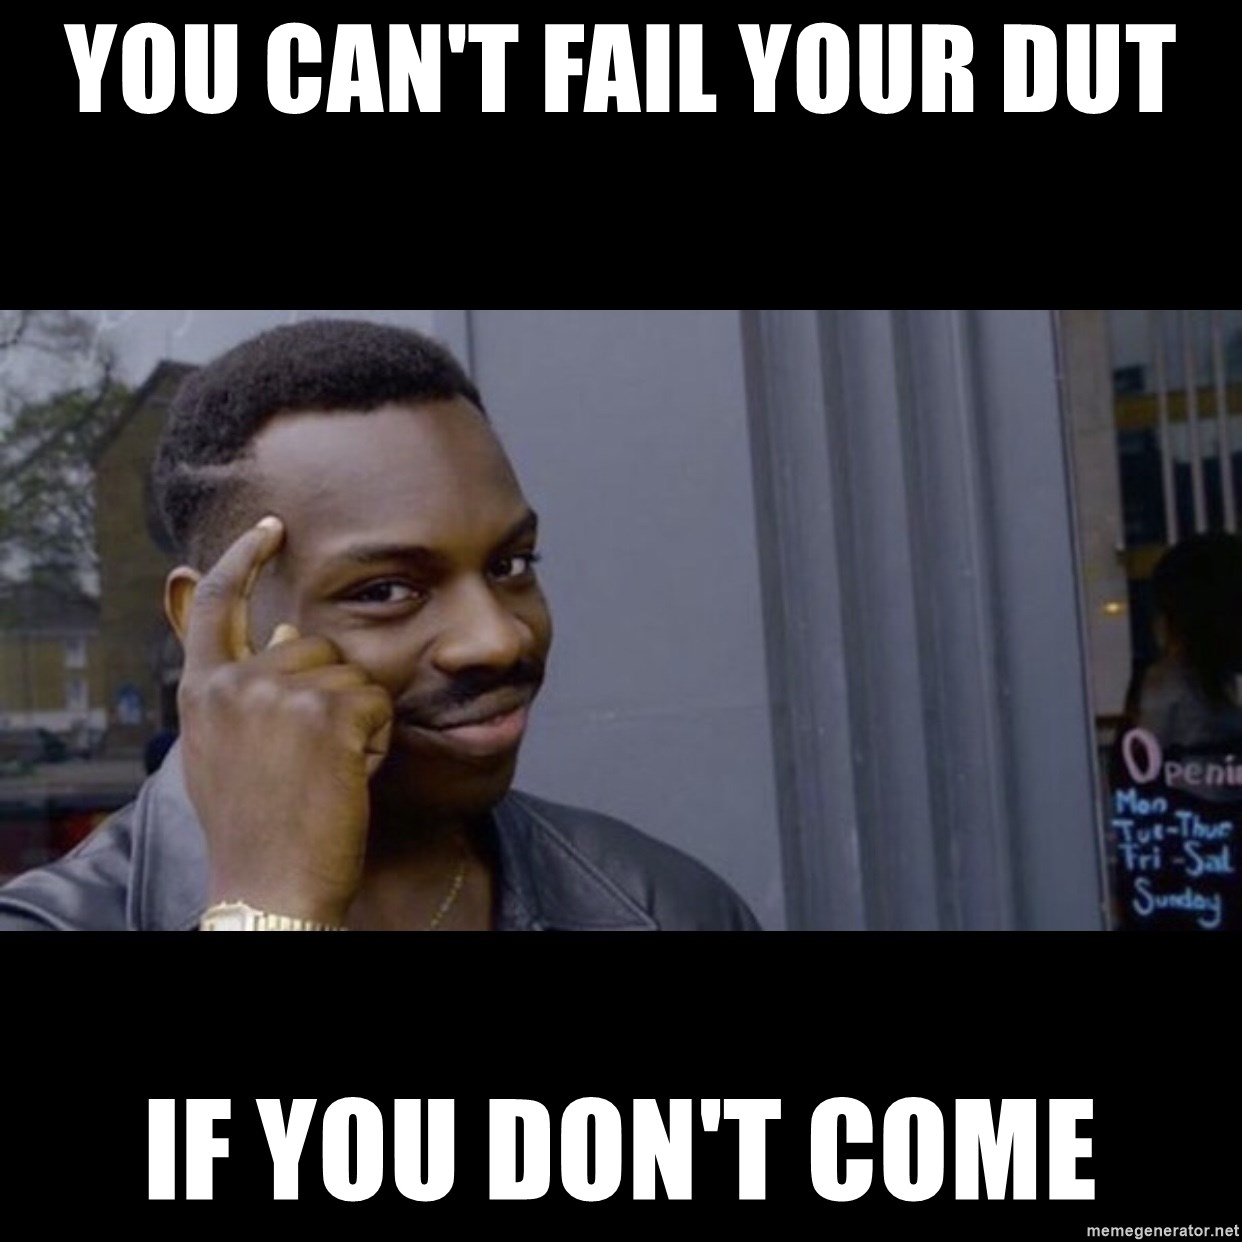 black guy thinking meme - YOU CAN'T FAIL YOUR DUT IF YOU DON'T COME